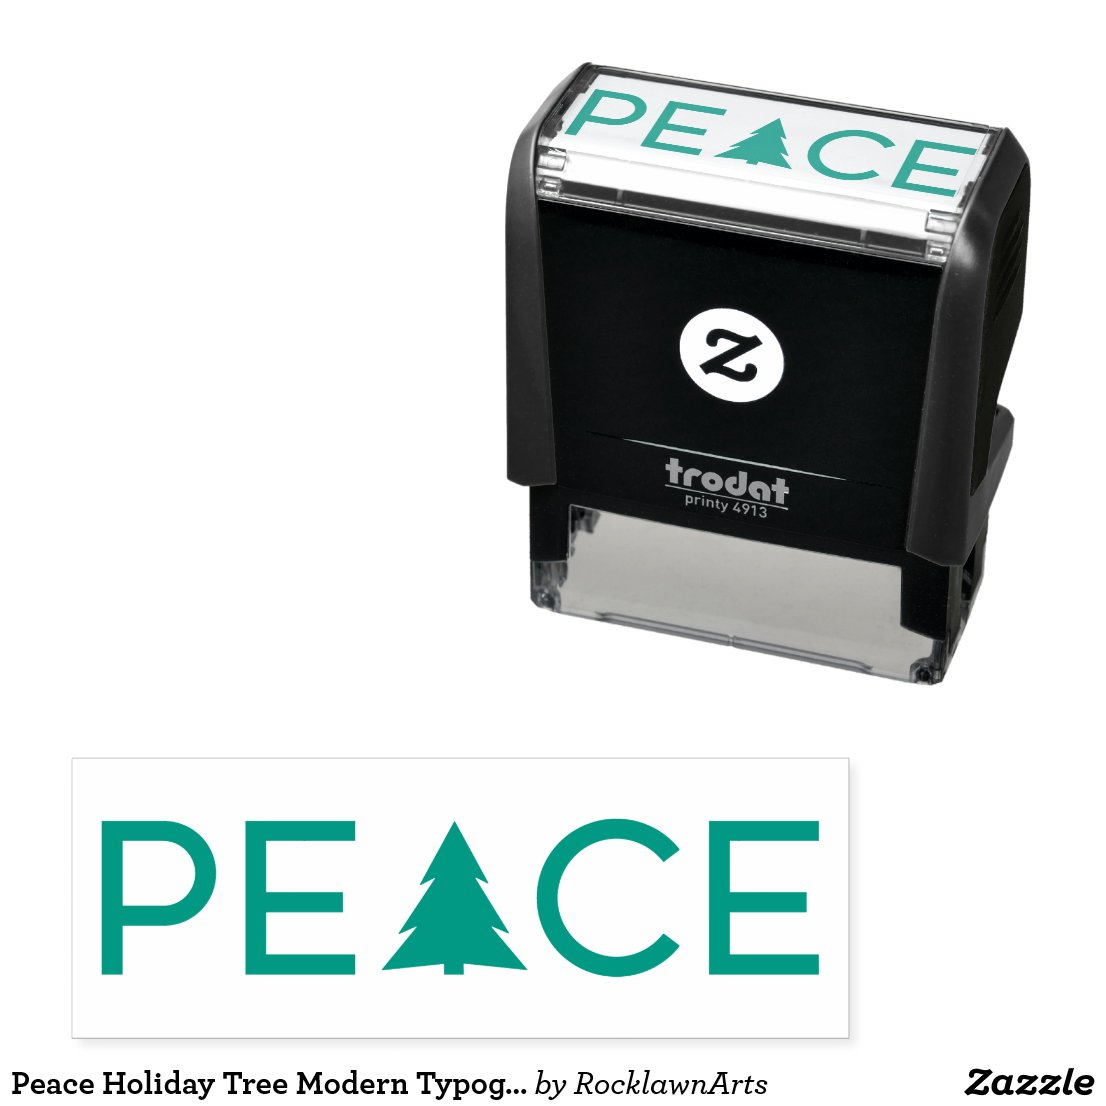 Peace Holiday Tree Modern Typography Self-inking Stamp